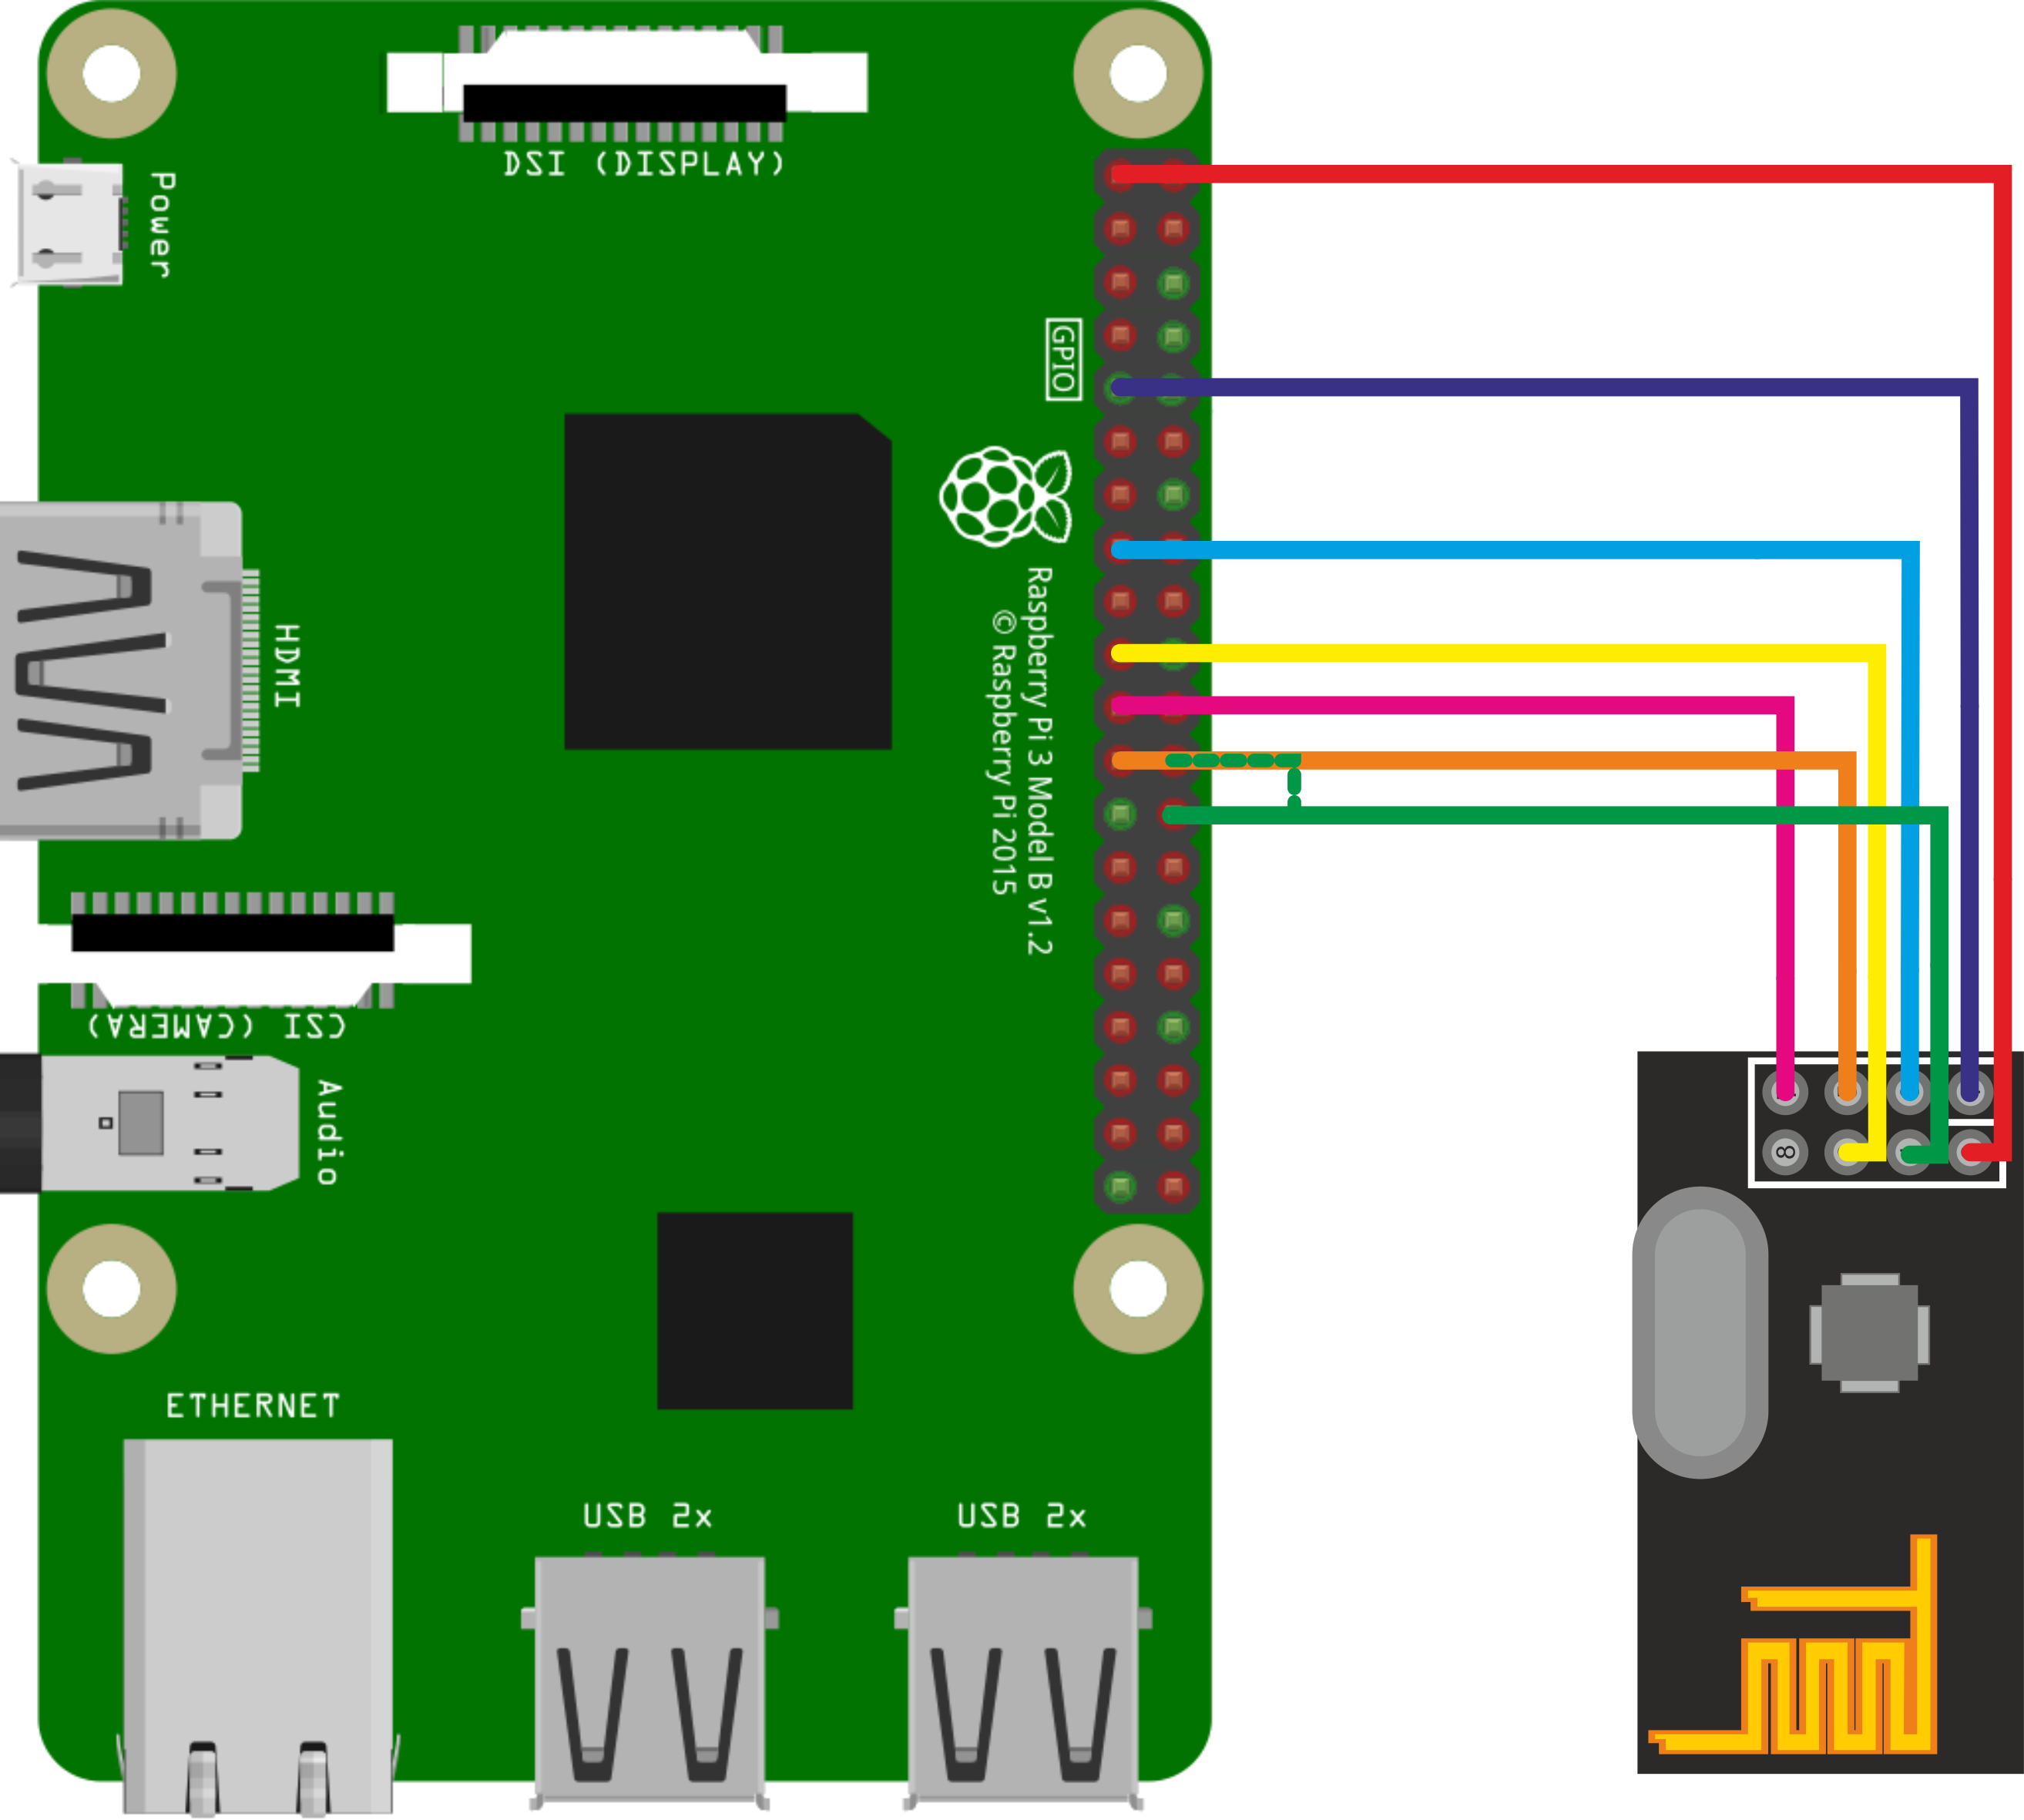 rPI connected to a rf24L01+